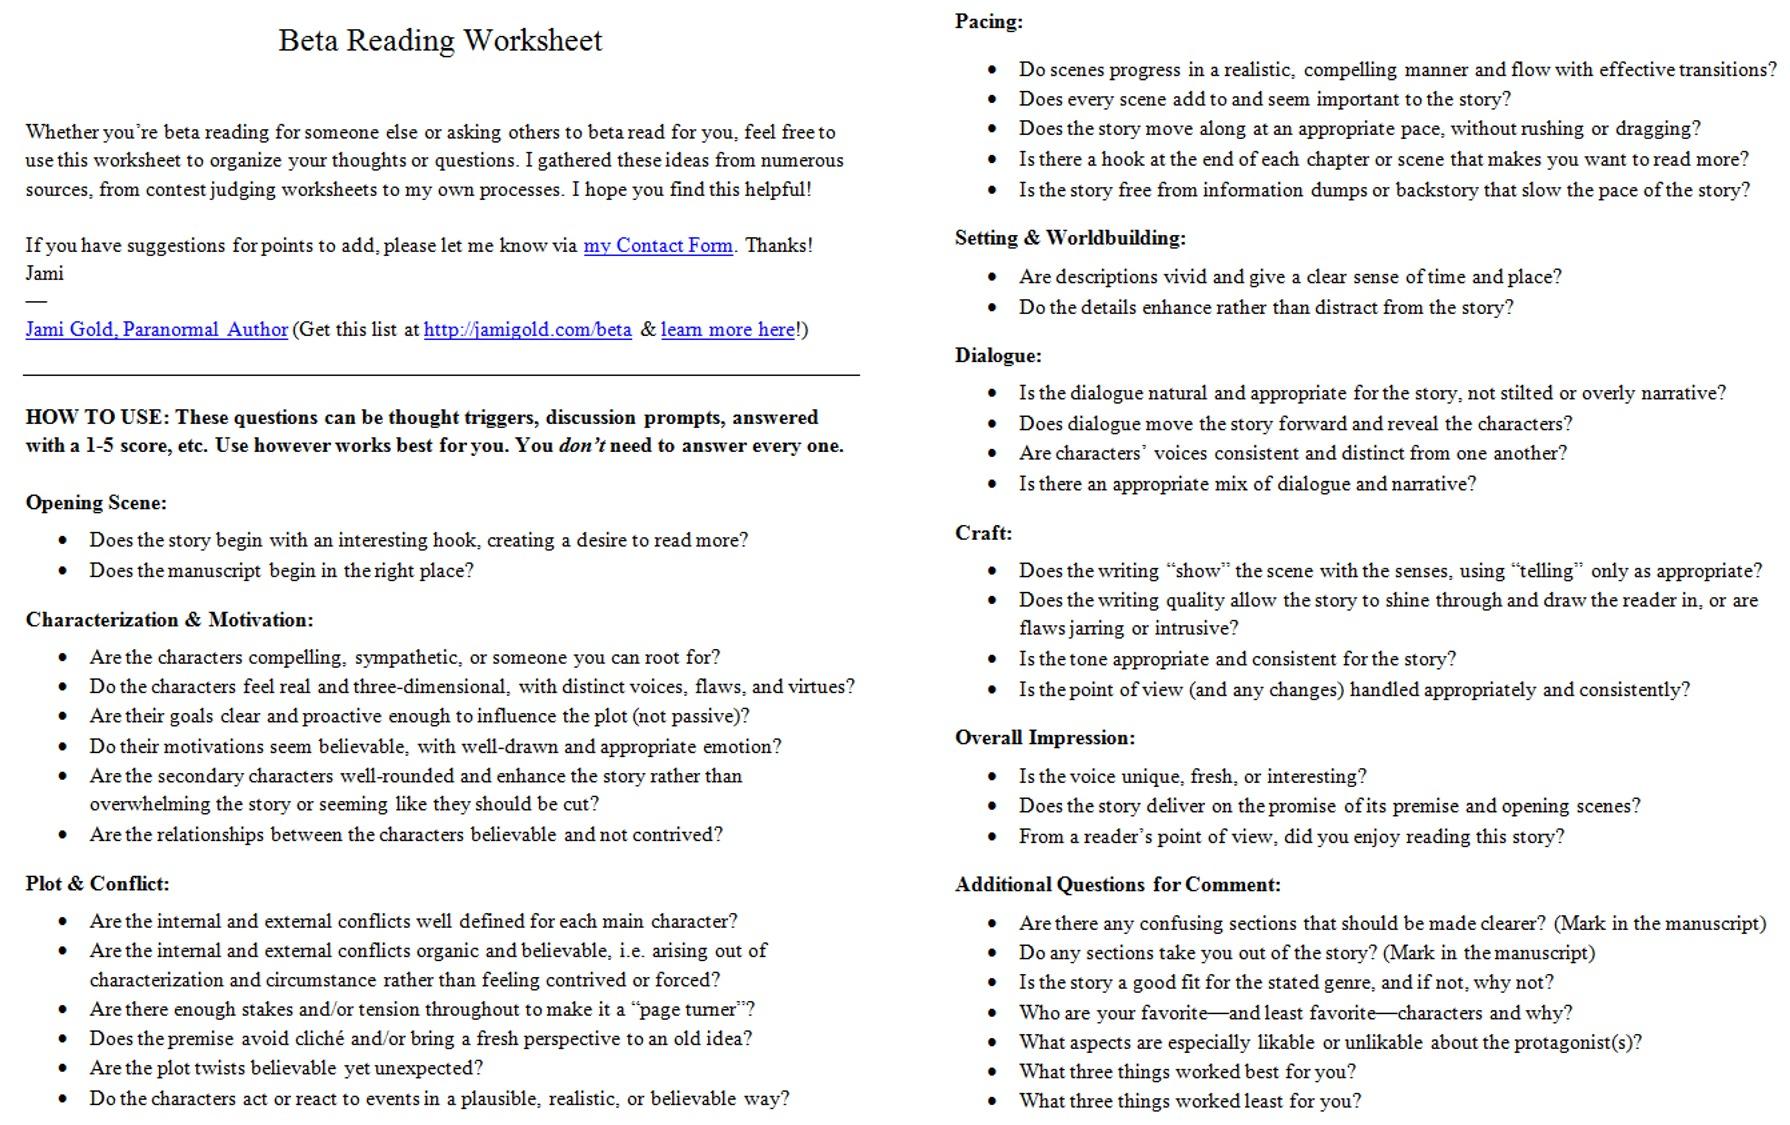 Weirdmailus  Pleasing Worksheets For Writers  Jami Gold Paranormal Author With Entrancing Screen Shot Of The Twopage Beta Reading Worksheet With Lovely Multiplying Integer Worksheets Also Presidents Day Worksheets Elementary In Addition Free Native American Worksheets And Using Adjectives Worksheet As Well As Worksheet For Science Additionally Column Subtraction Worksheets Year  From Jamigoldcom With Weirdmailus  Entrancing Worksheets For Writers  Jami Gold Paranormal Author With Lovely Screen Shot Of The Twopage Beta Reading Worksheet And Pleasing Multiplying Integer Worksheets Also Presidents Day Worksheets Elementary In Addition Free Native American Worksheets From Jamigoldcom